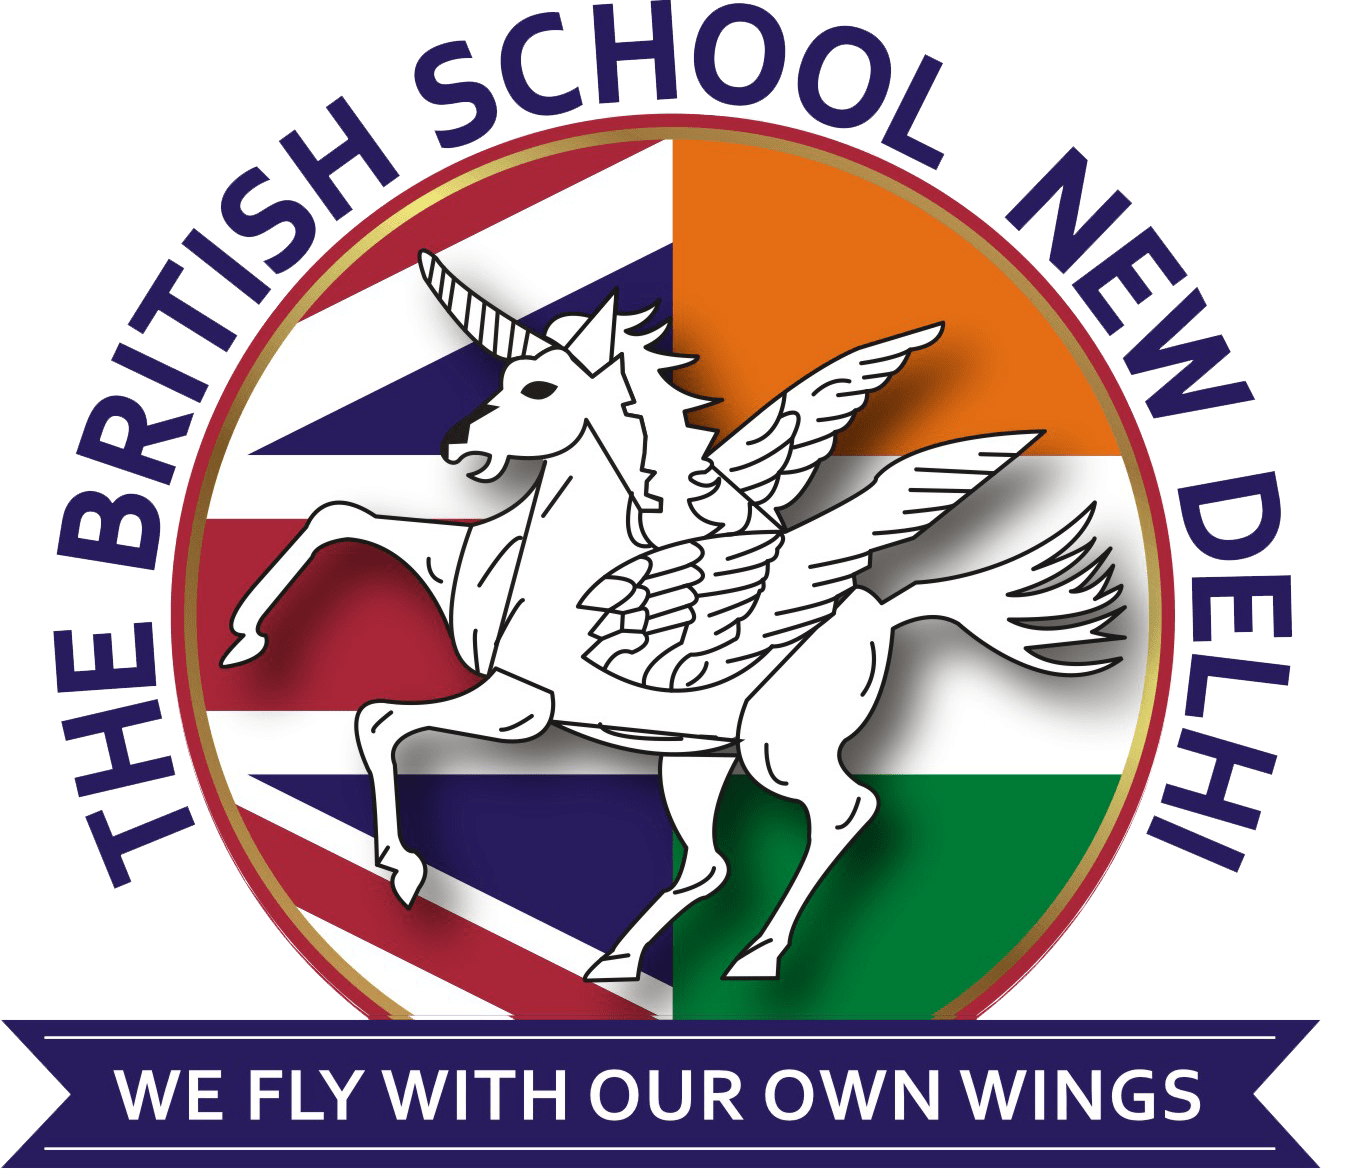 The British School New Delhi